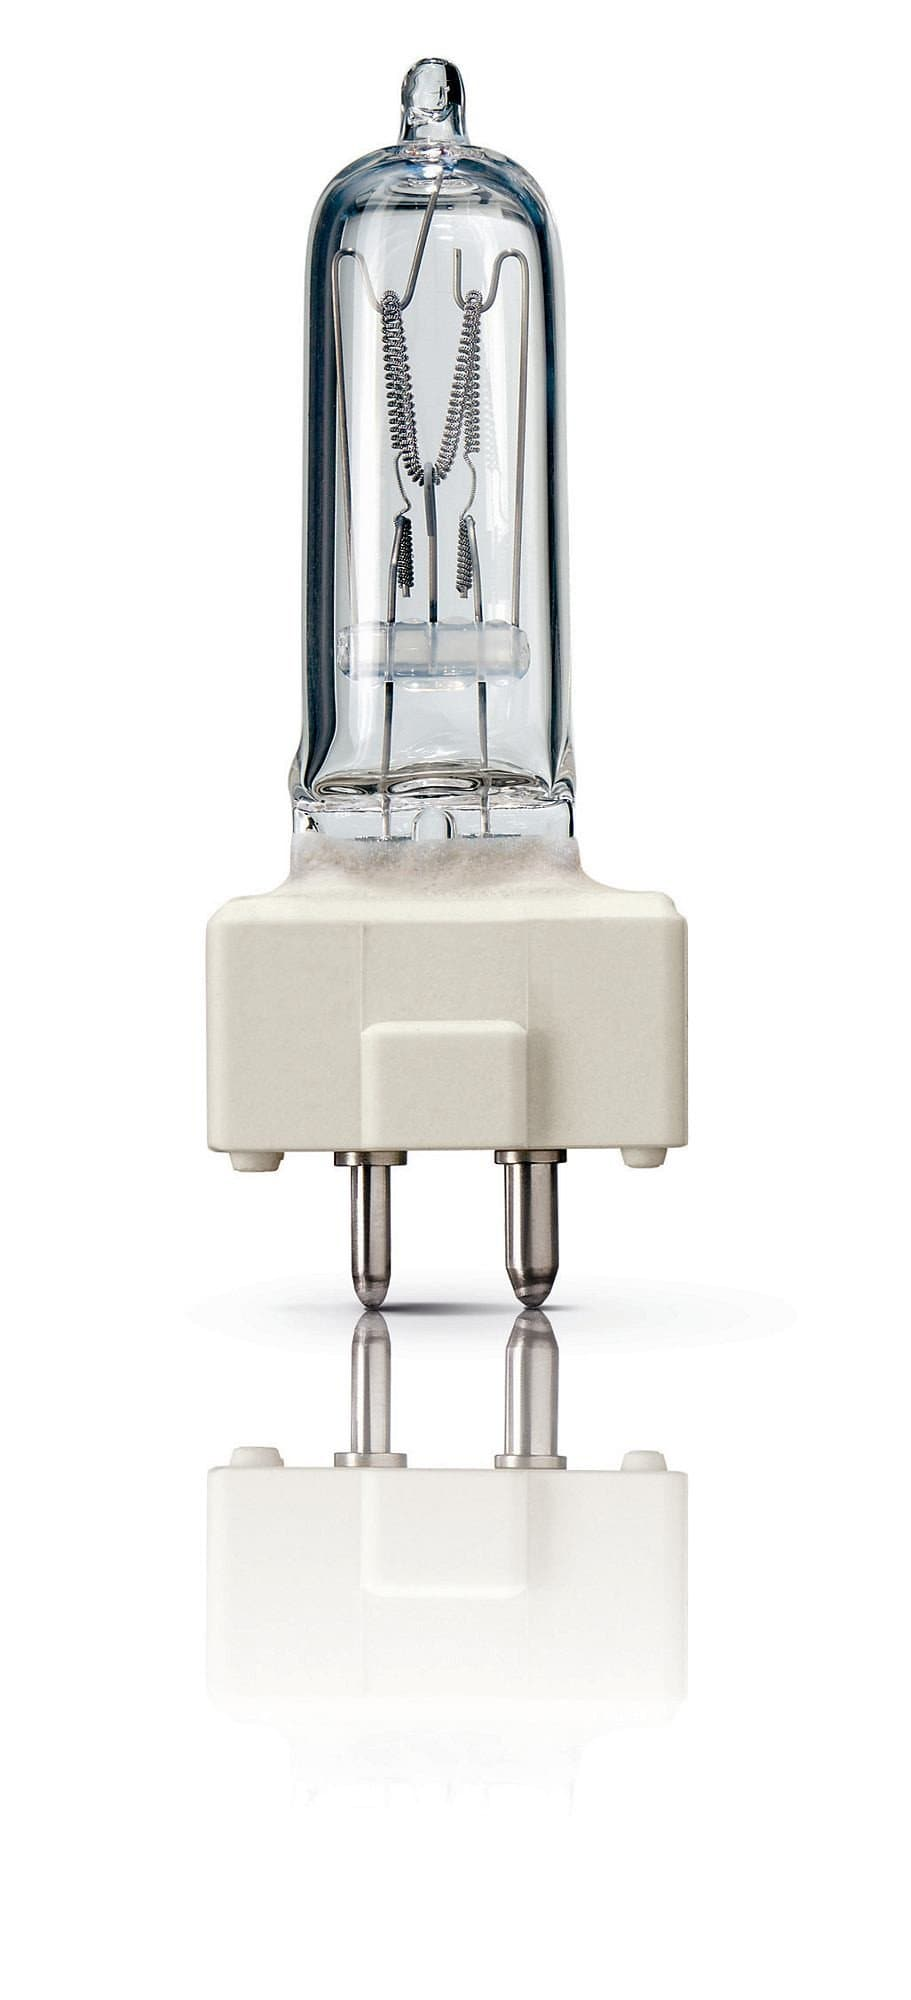 Philips 300w 230v FSL 6872P 3200k GY9.5 Halogen Light Bulb